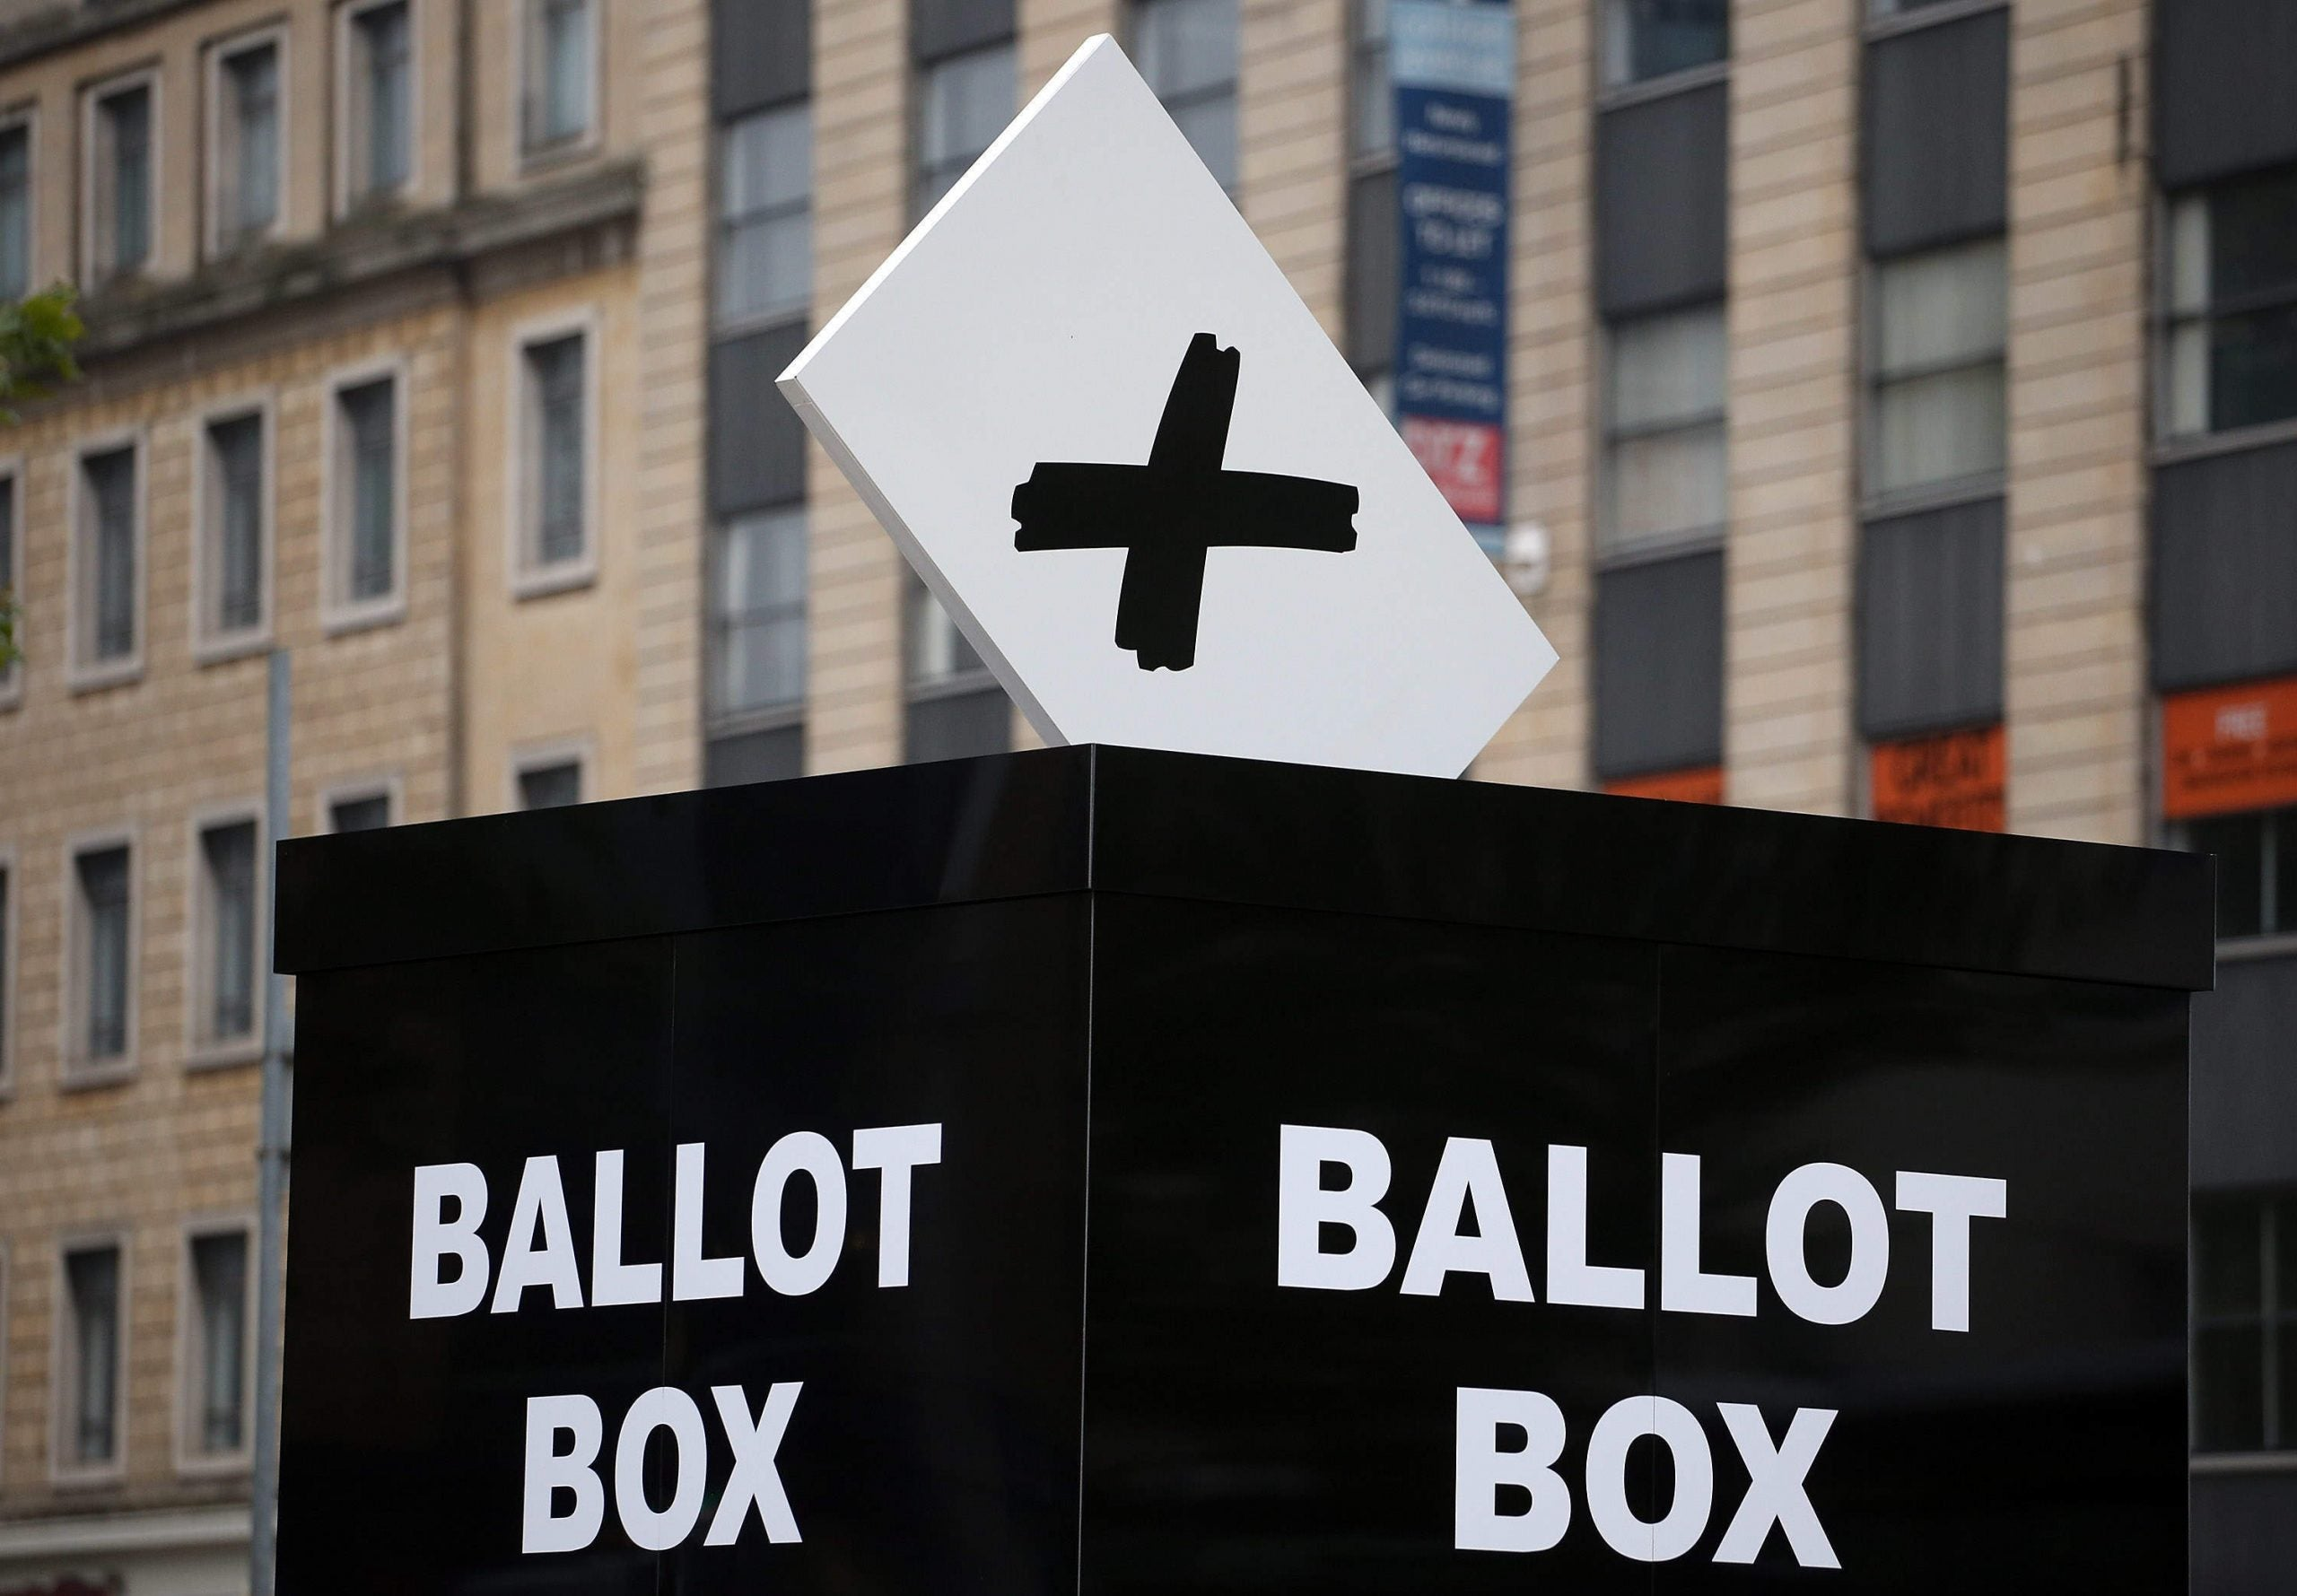 In defence of compulsory voting